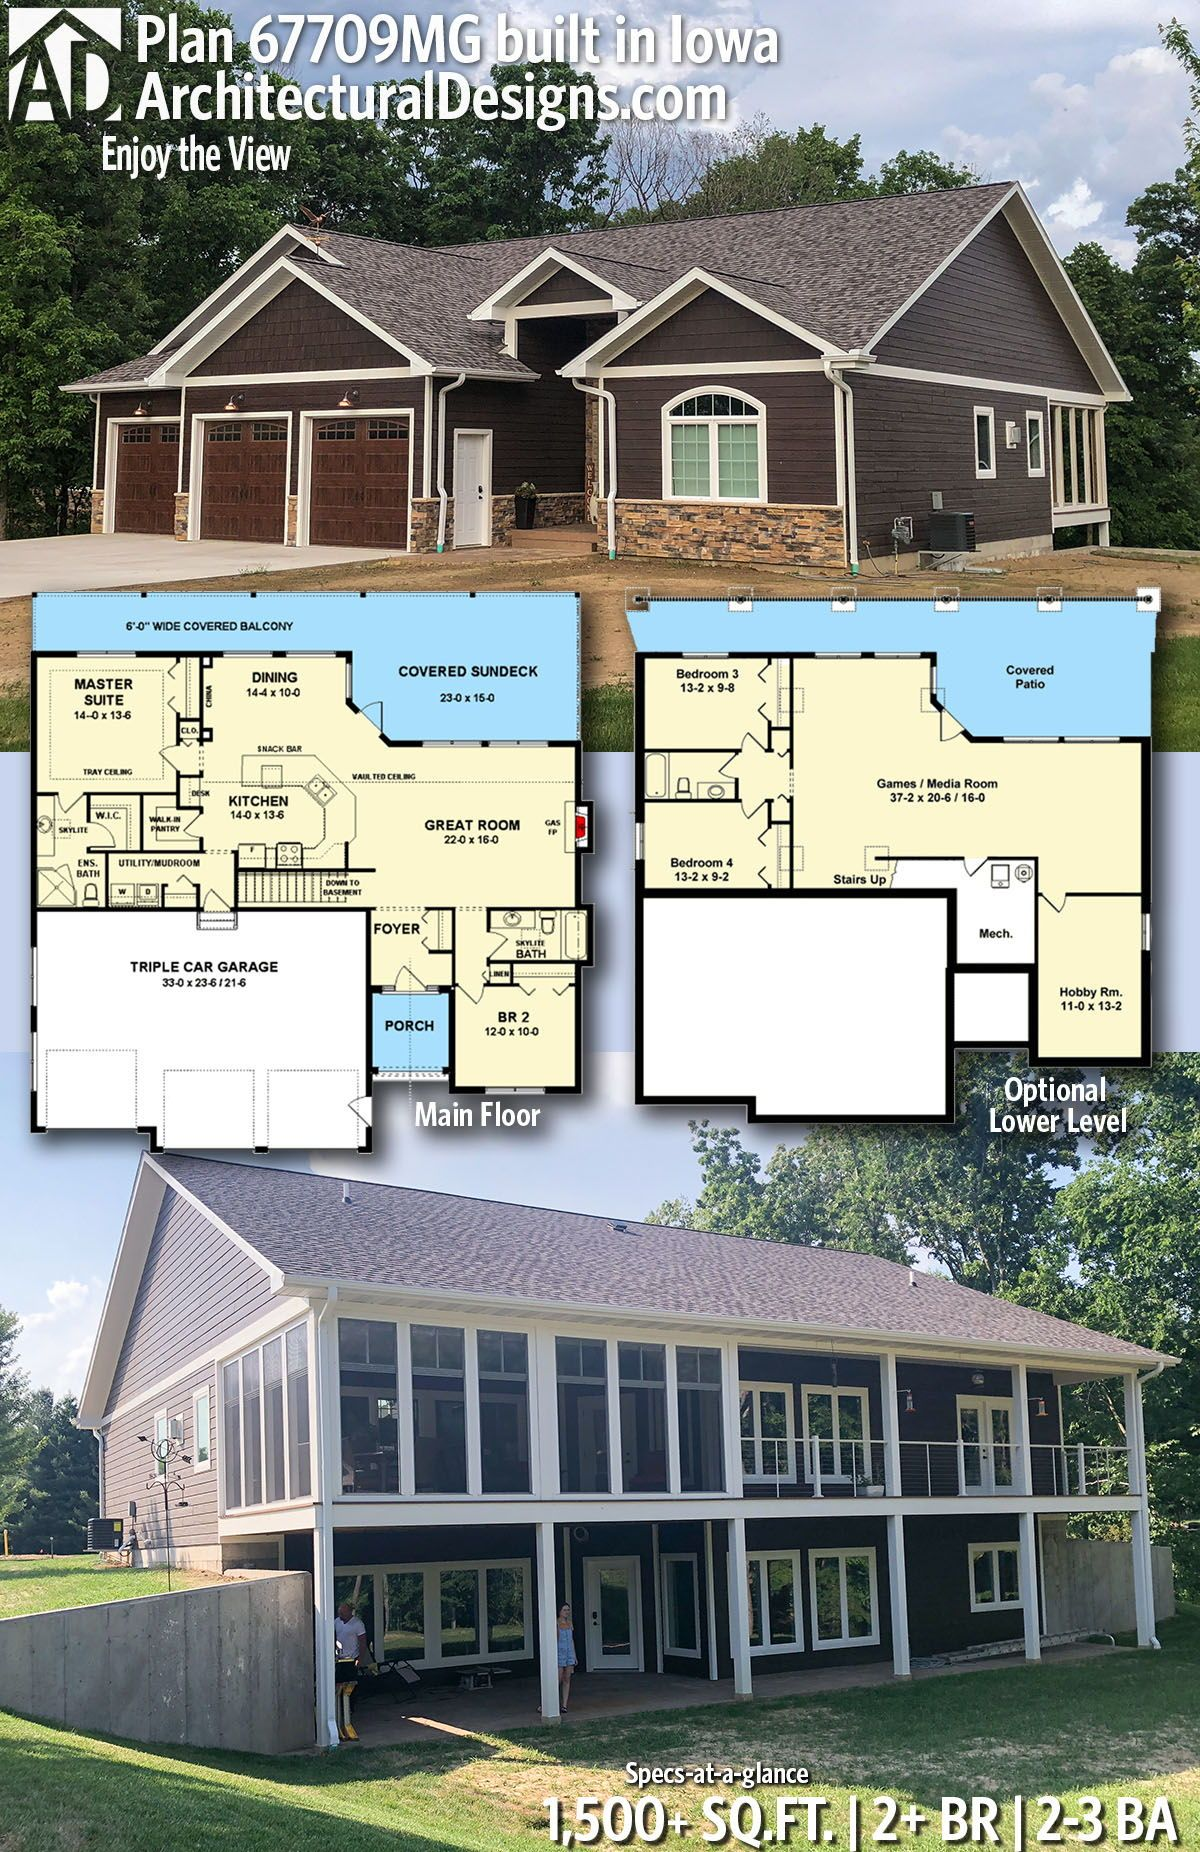 Architectural designs home plan mg comes to life in iowa this gives you also best homes for the sloping lot images architecture rh pinterest